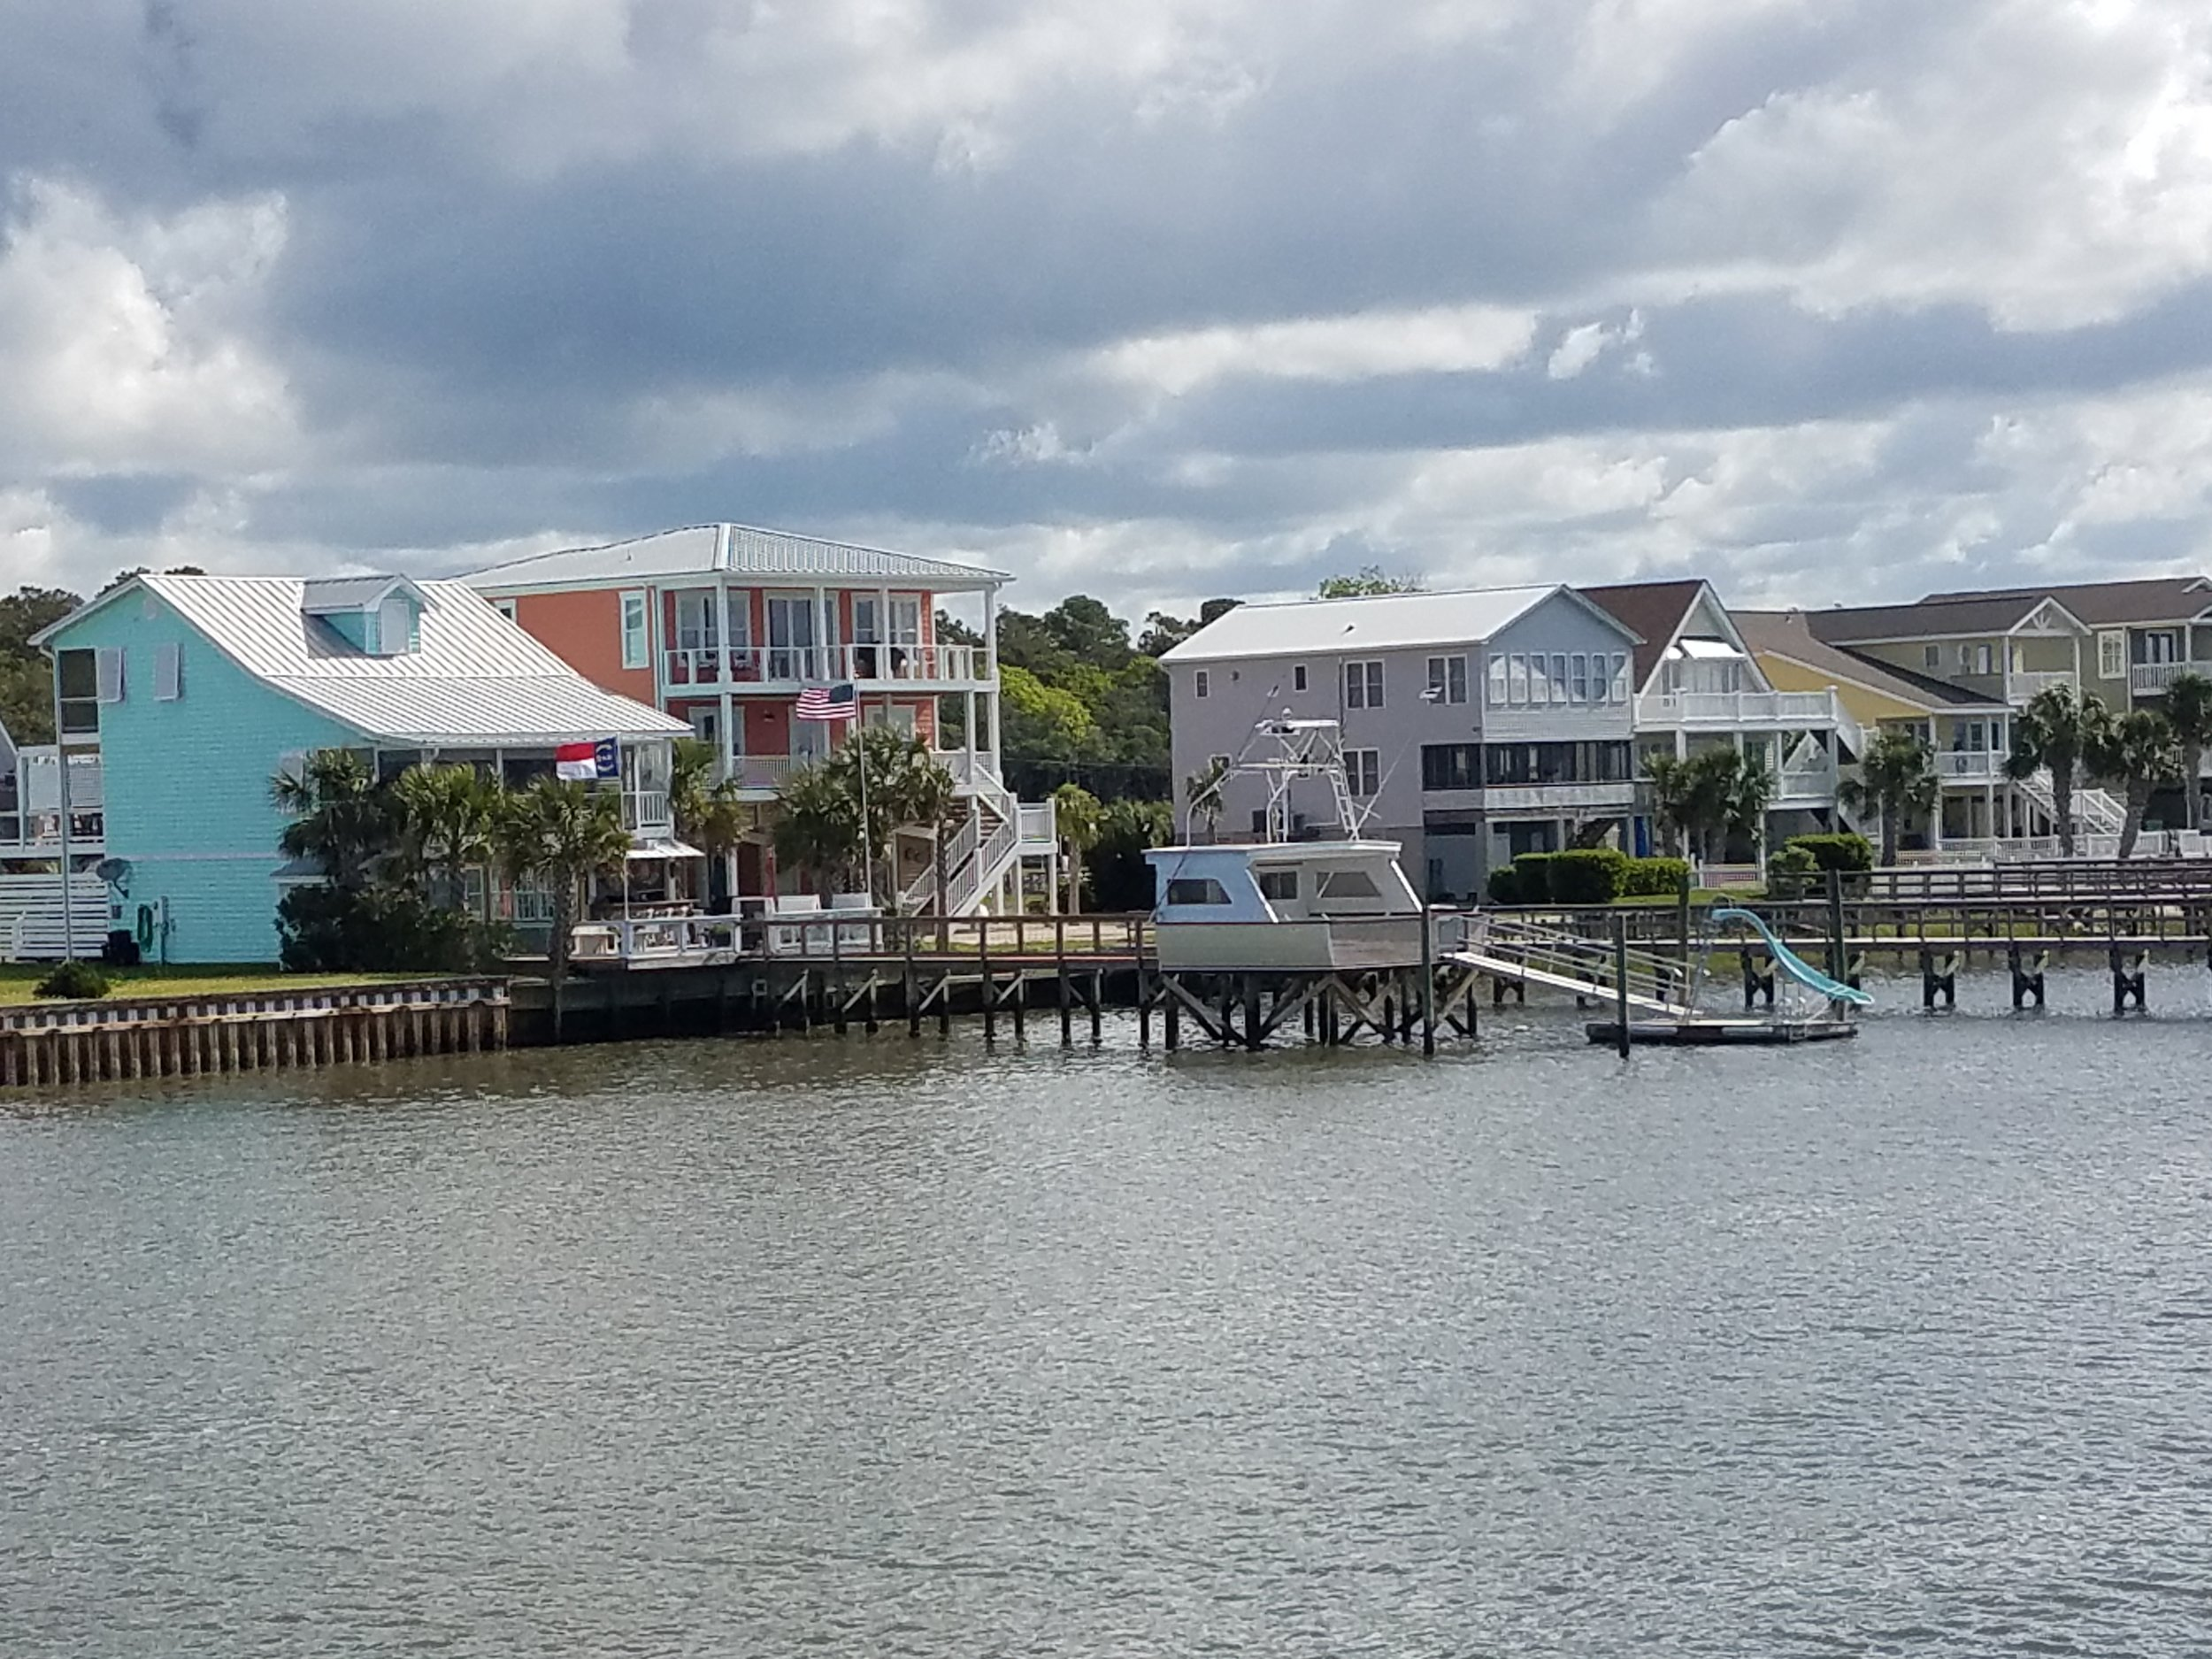 Loved this home on the ICW that used their old boat stern as a boat house and had a water slide to boot!